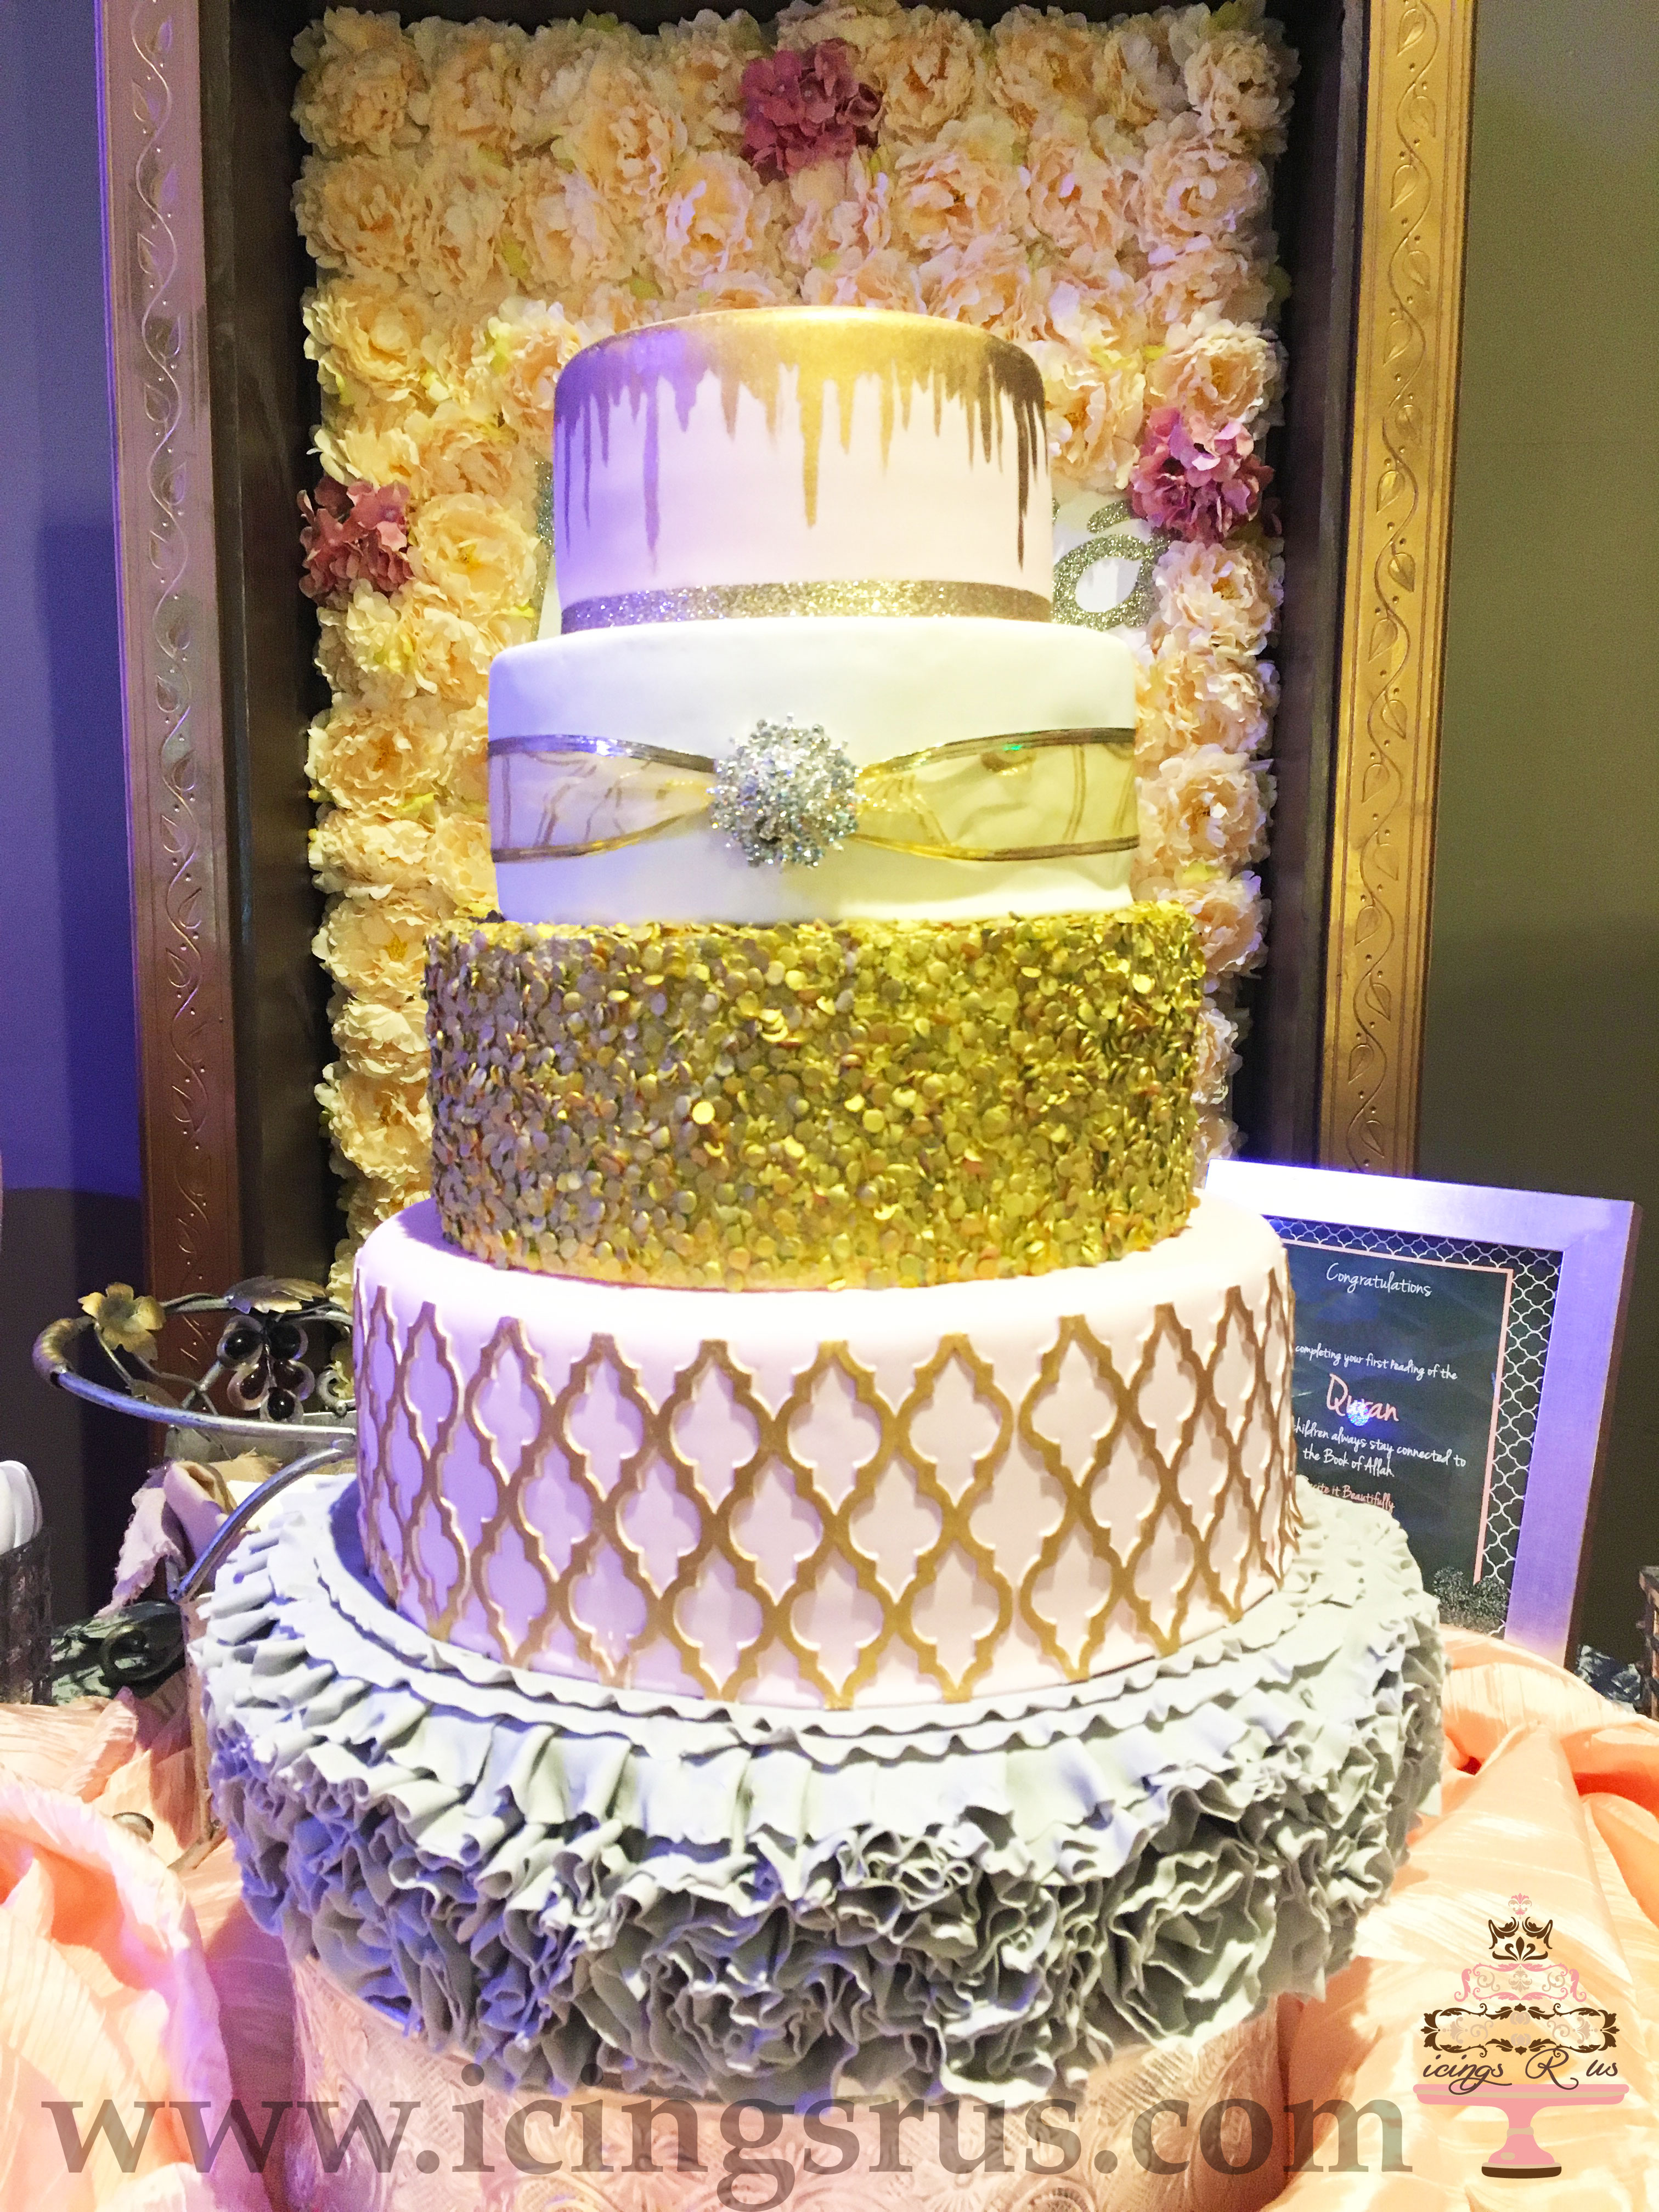 icingsrus-Blush-and-gold-5-tier-wedding-cake